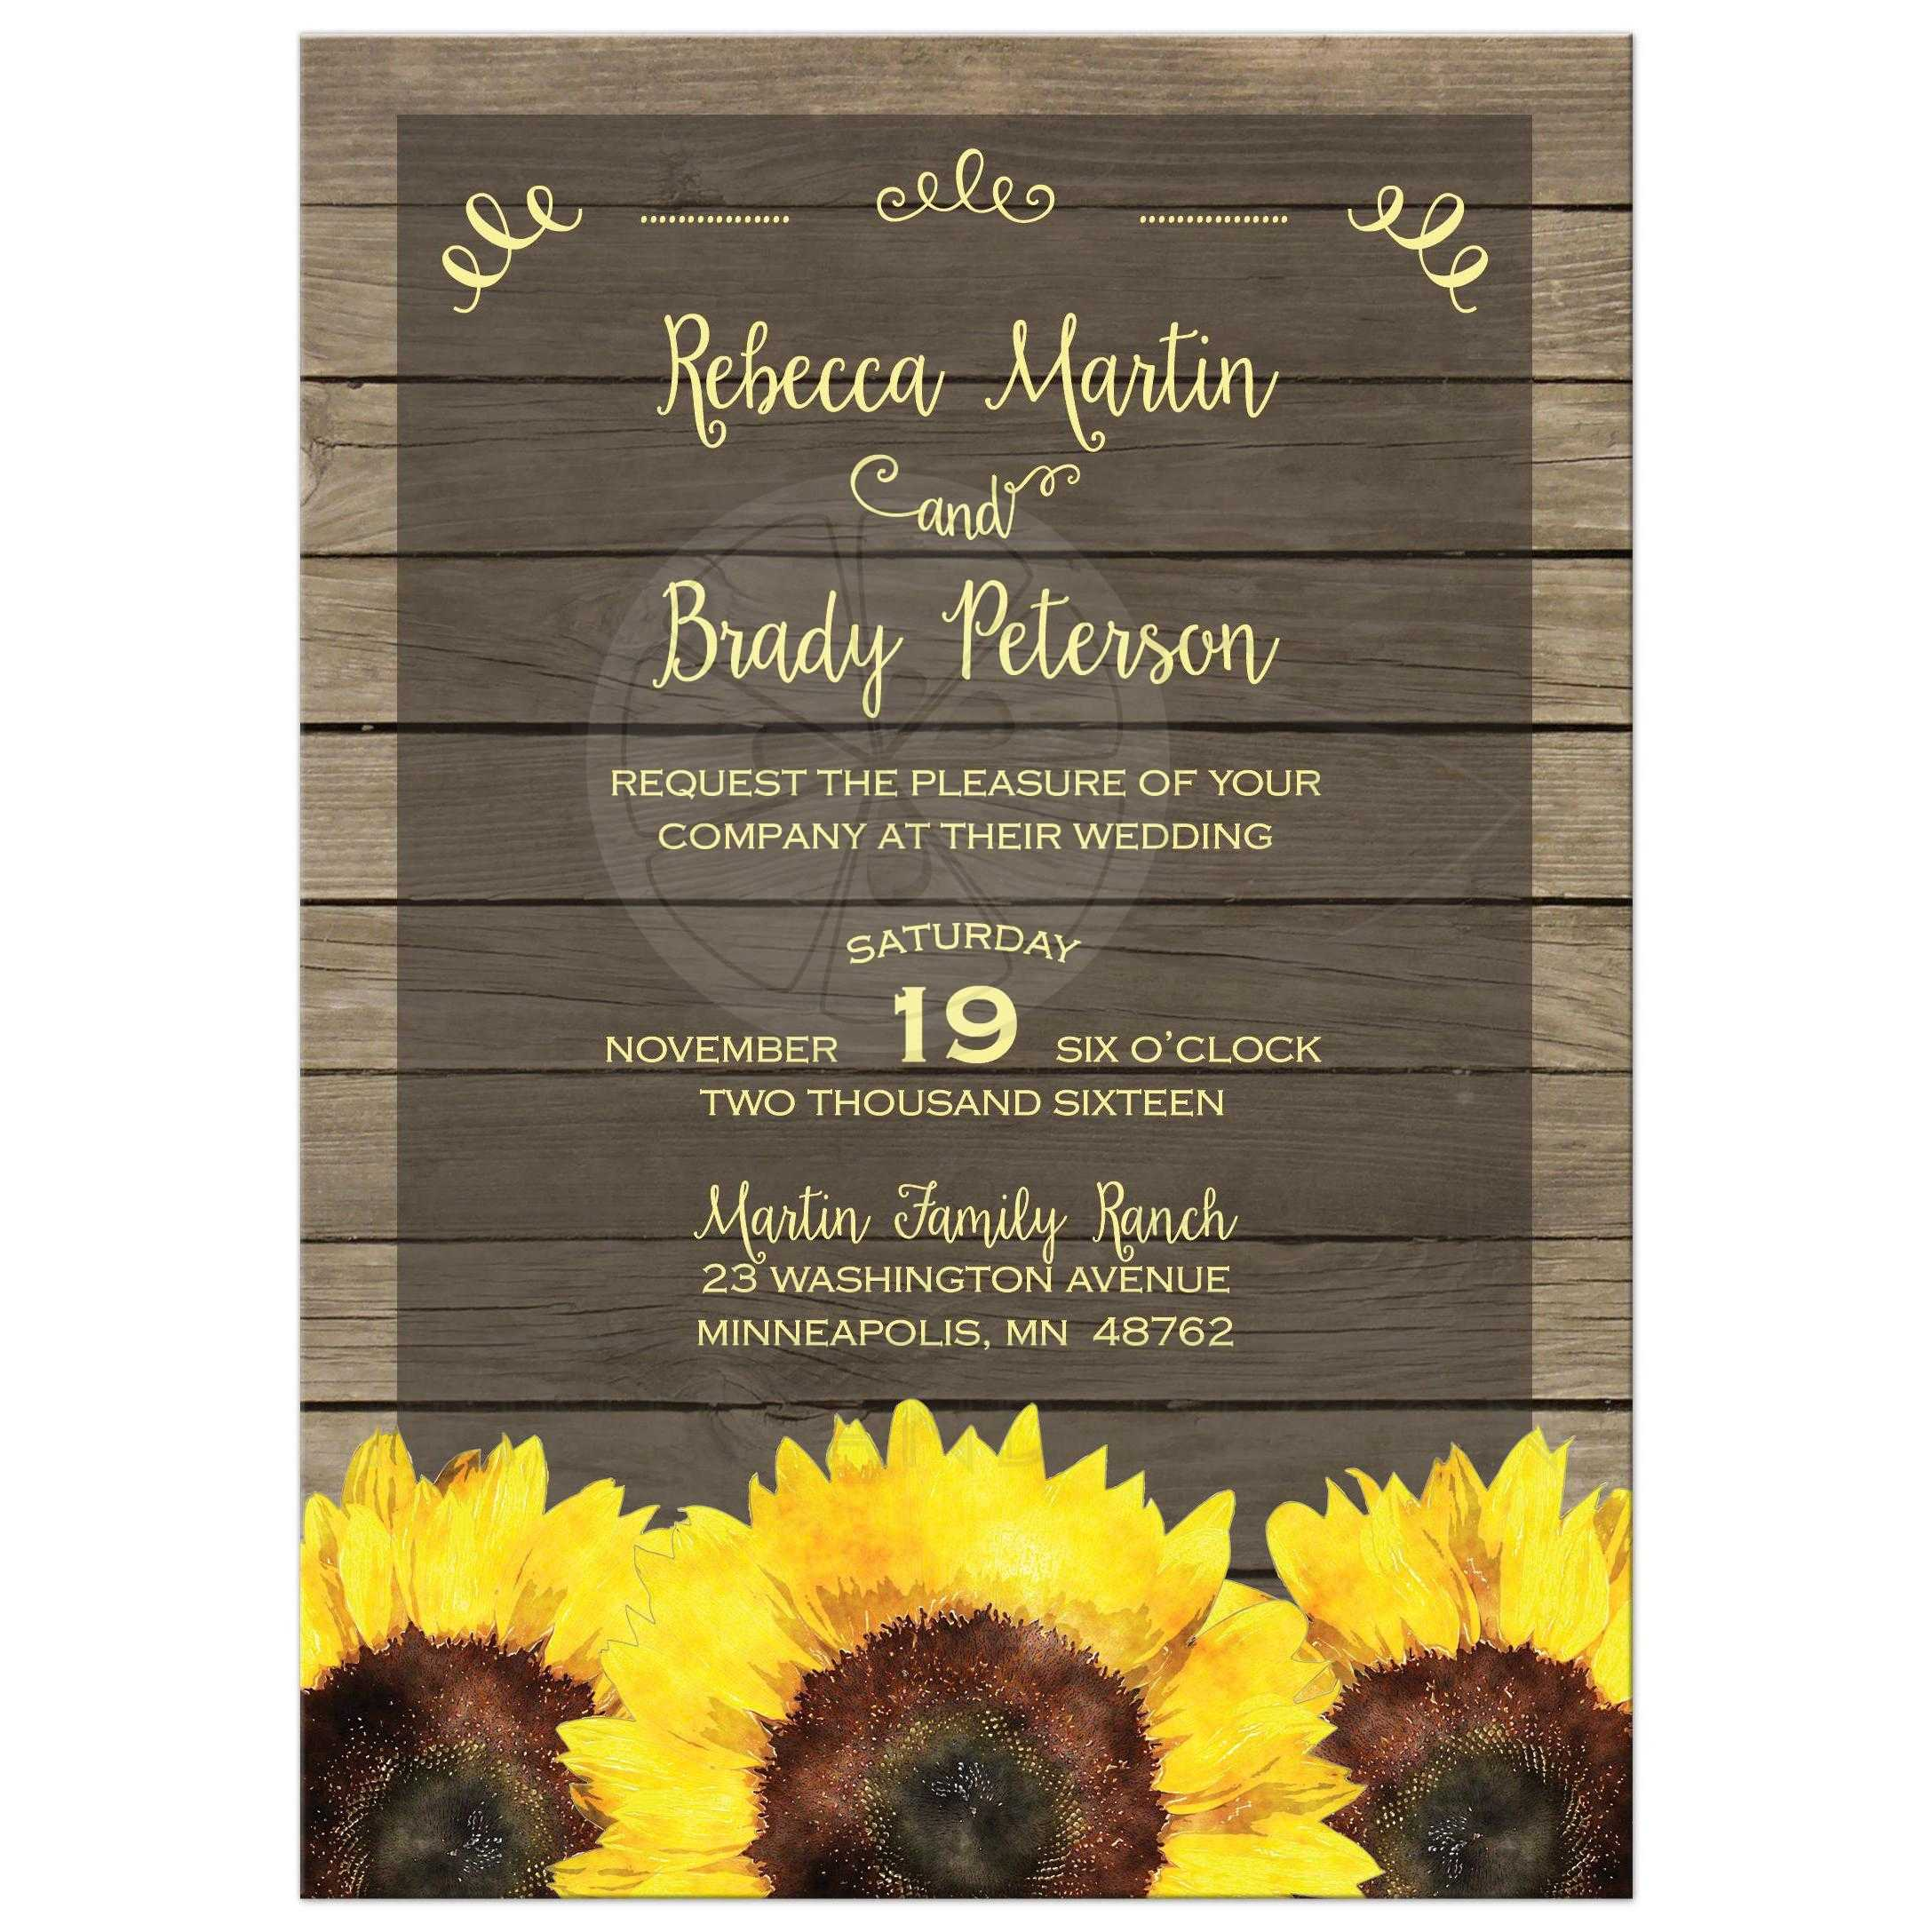 Wedding Invitation Rustic Yellow And Brown Sunflowers On Wood Planks - Sunflower wedding invitations templates